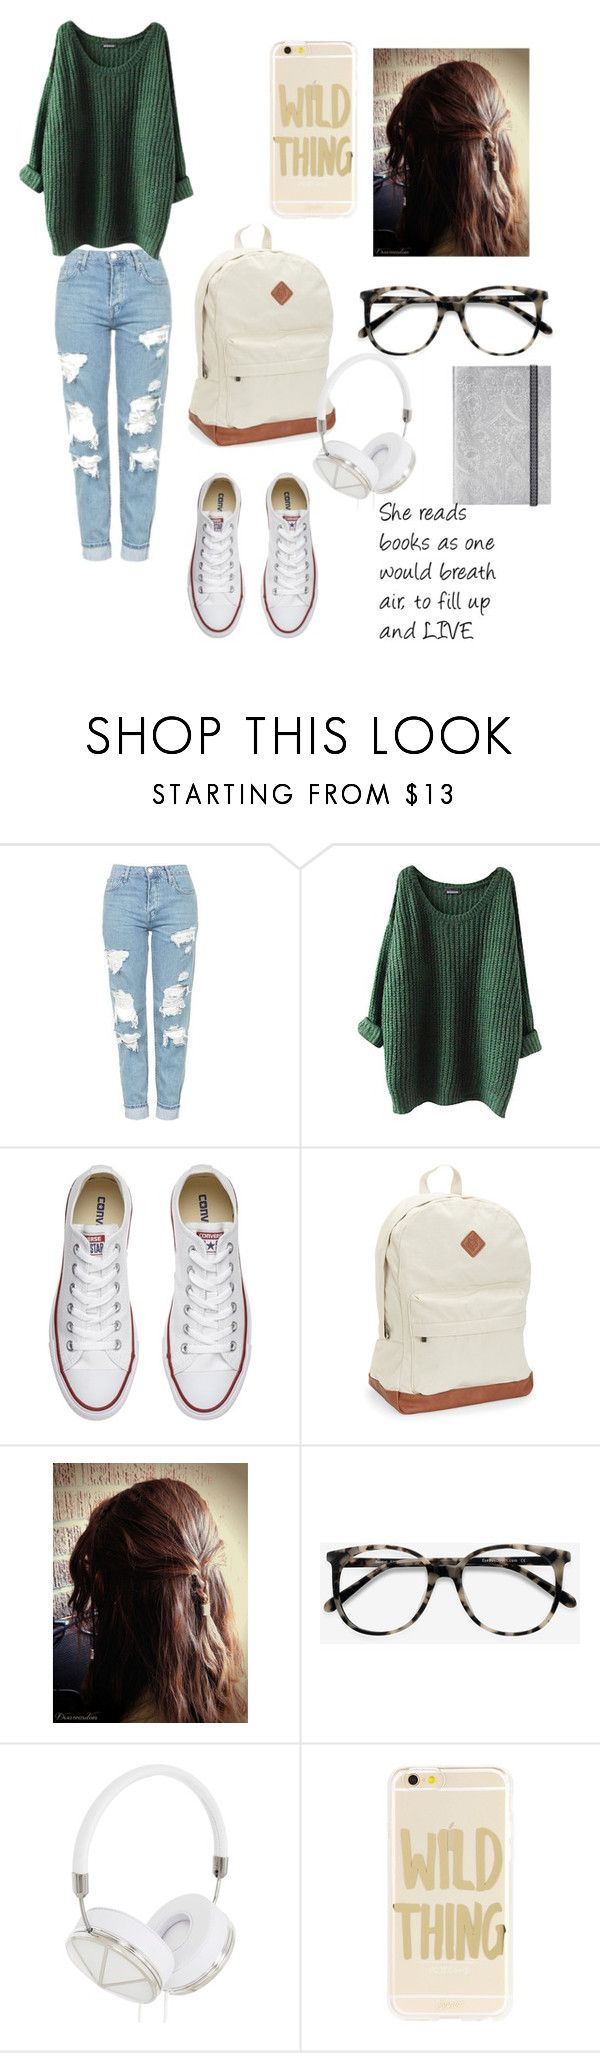 Bookwarm by butterfly-18 on Polyvore featuring Topshop, Converse, Aéropostale, Sonix, Frends and Ace